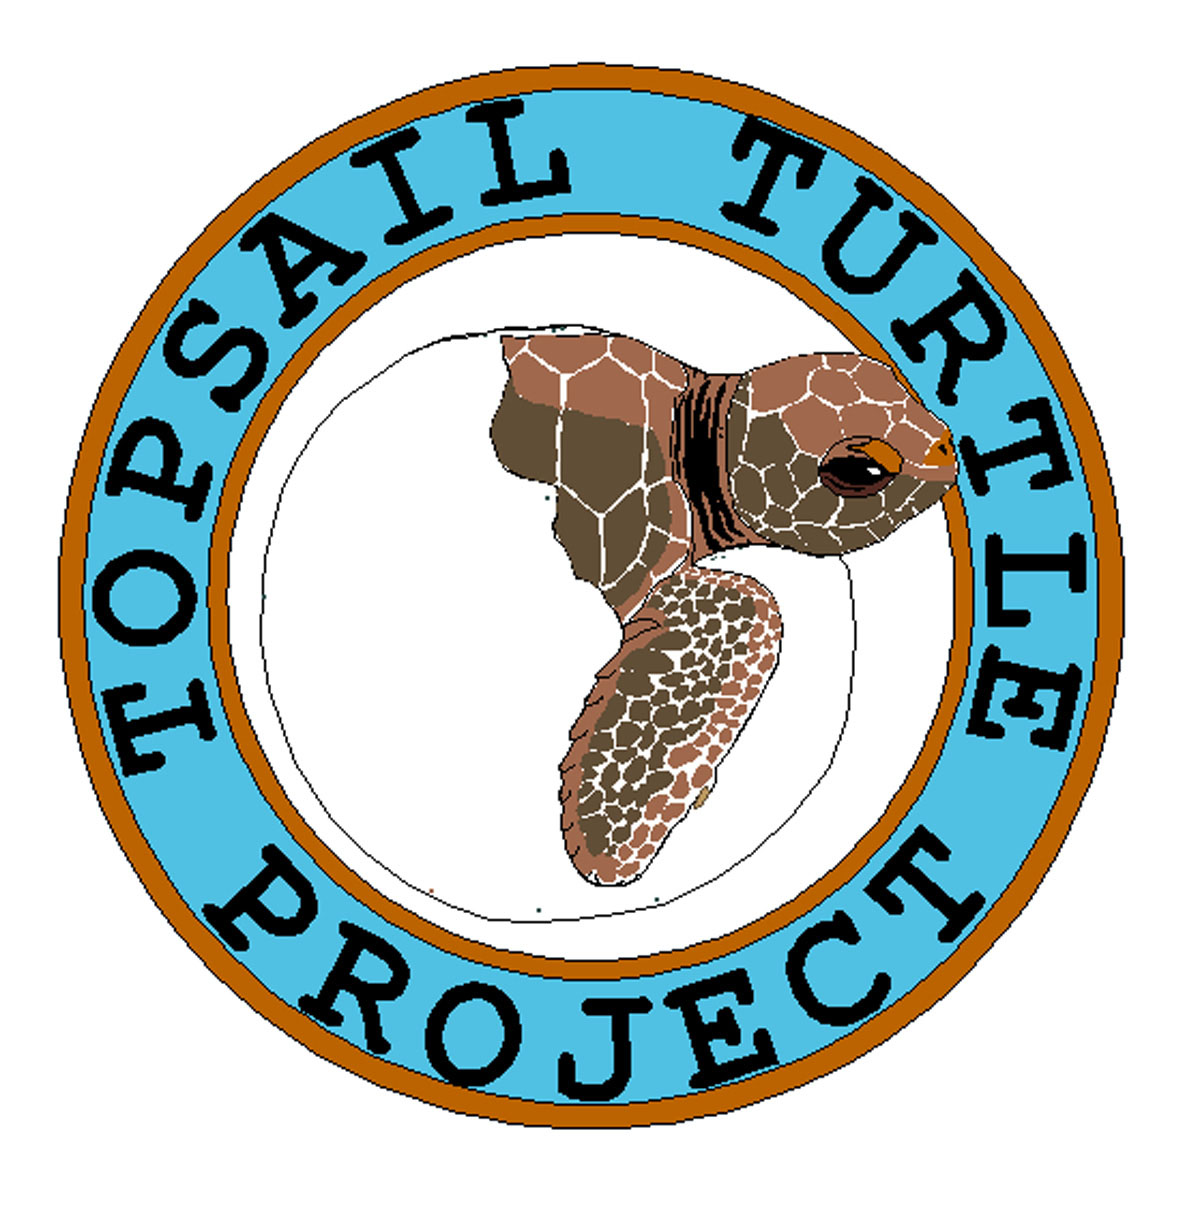 Topsail_Turtle_Project